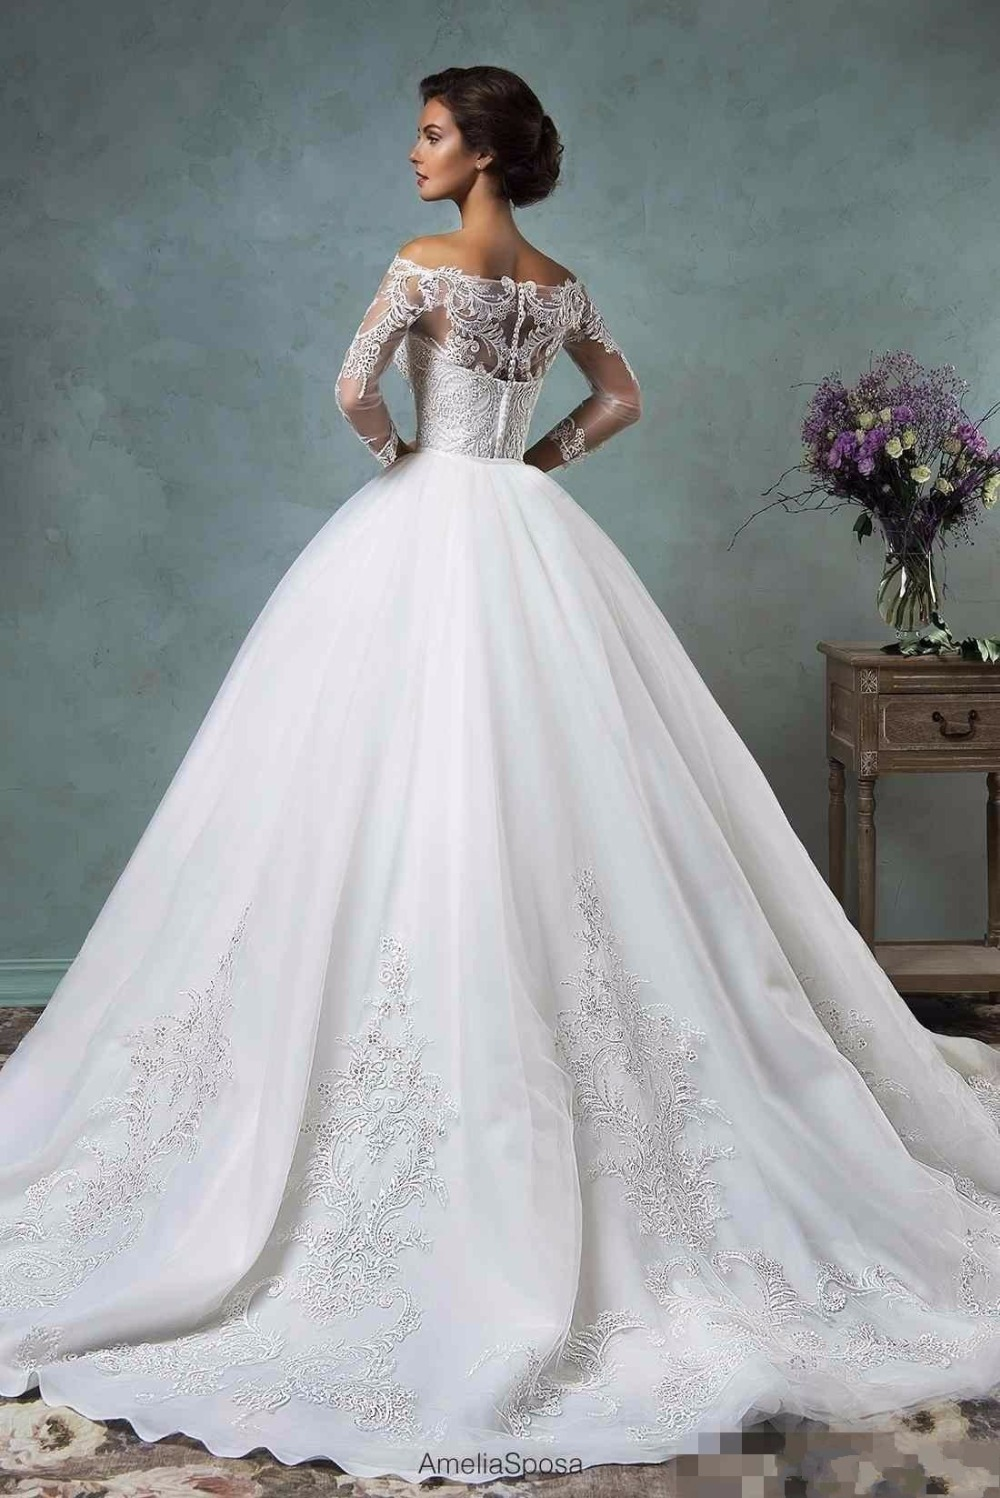 a391081e31 Vintage 2017 Amelia Sposa Lace Wedding Dresses with Detachable Skirt Cheap  Modest Sheer Long Sleeve Appliques Bridal Gowns -in Wedding Dresses from  Weddings ...